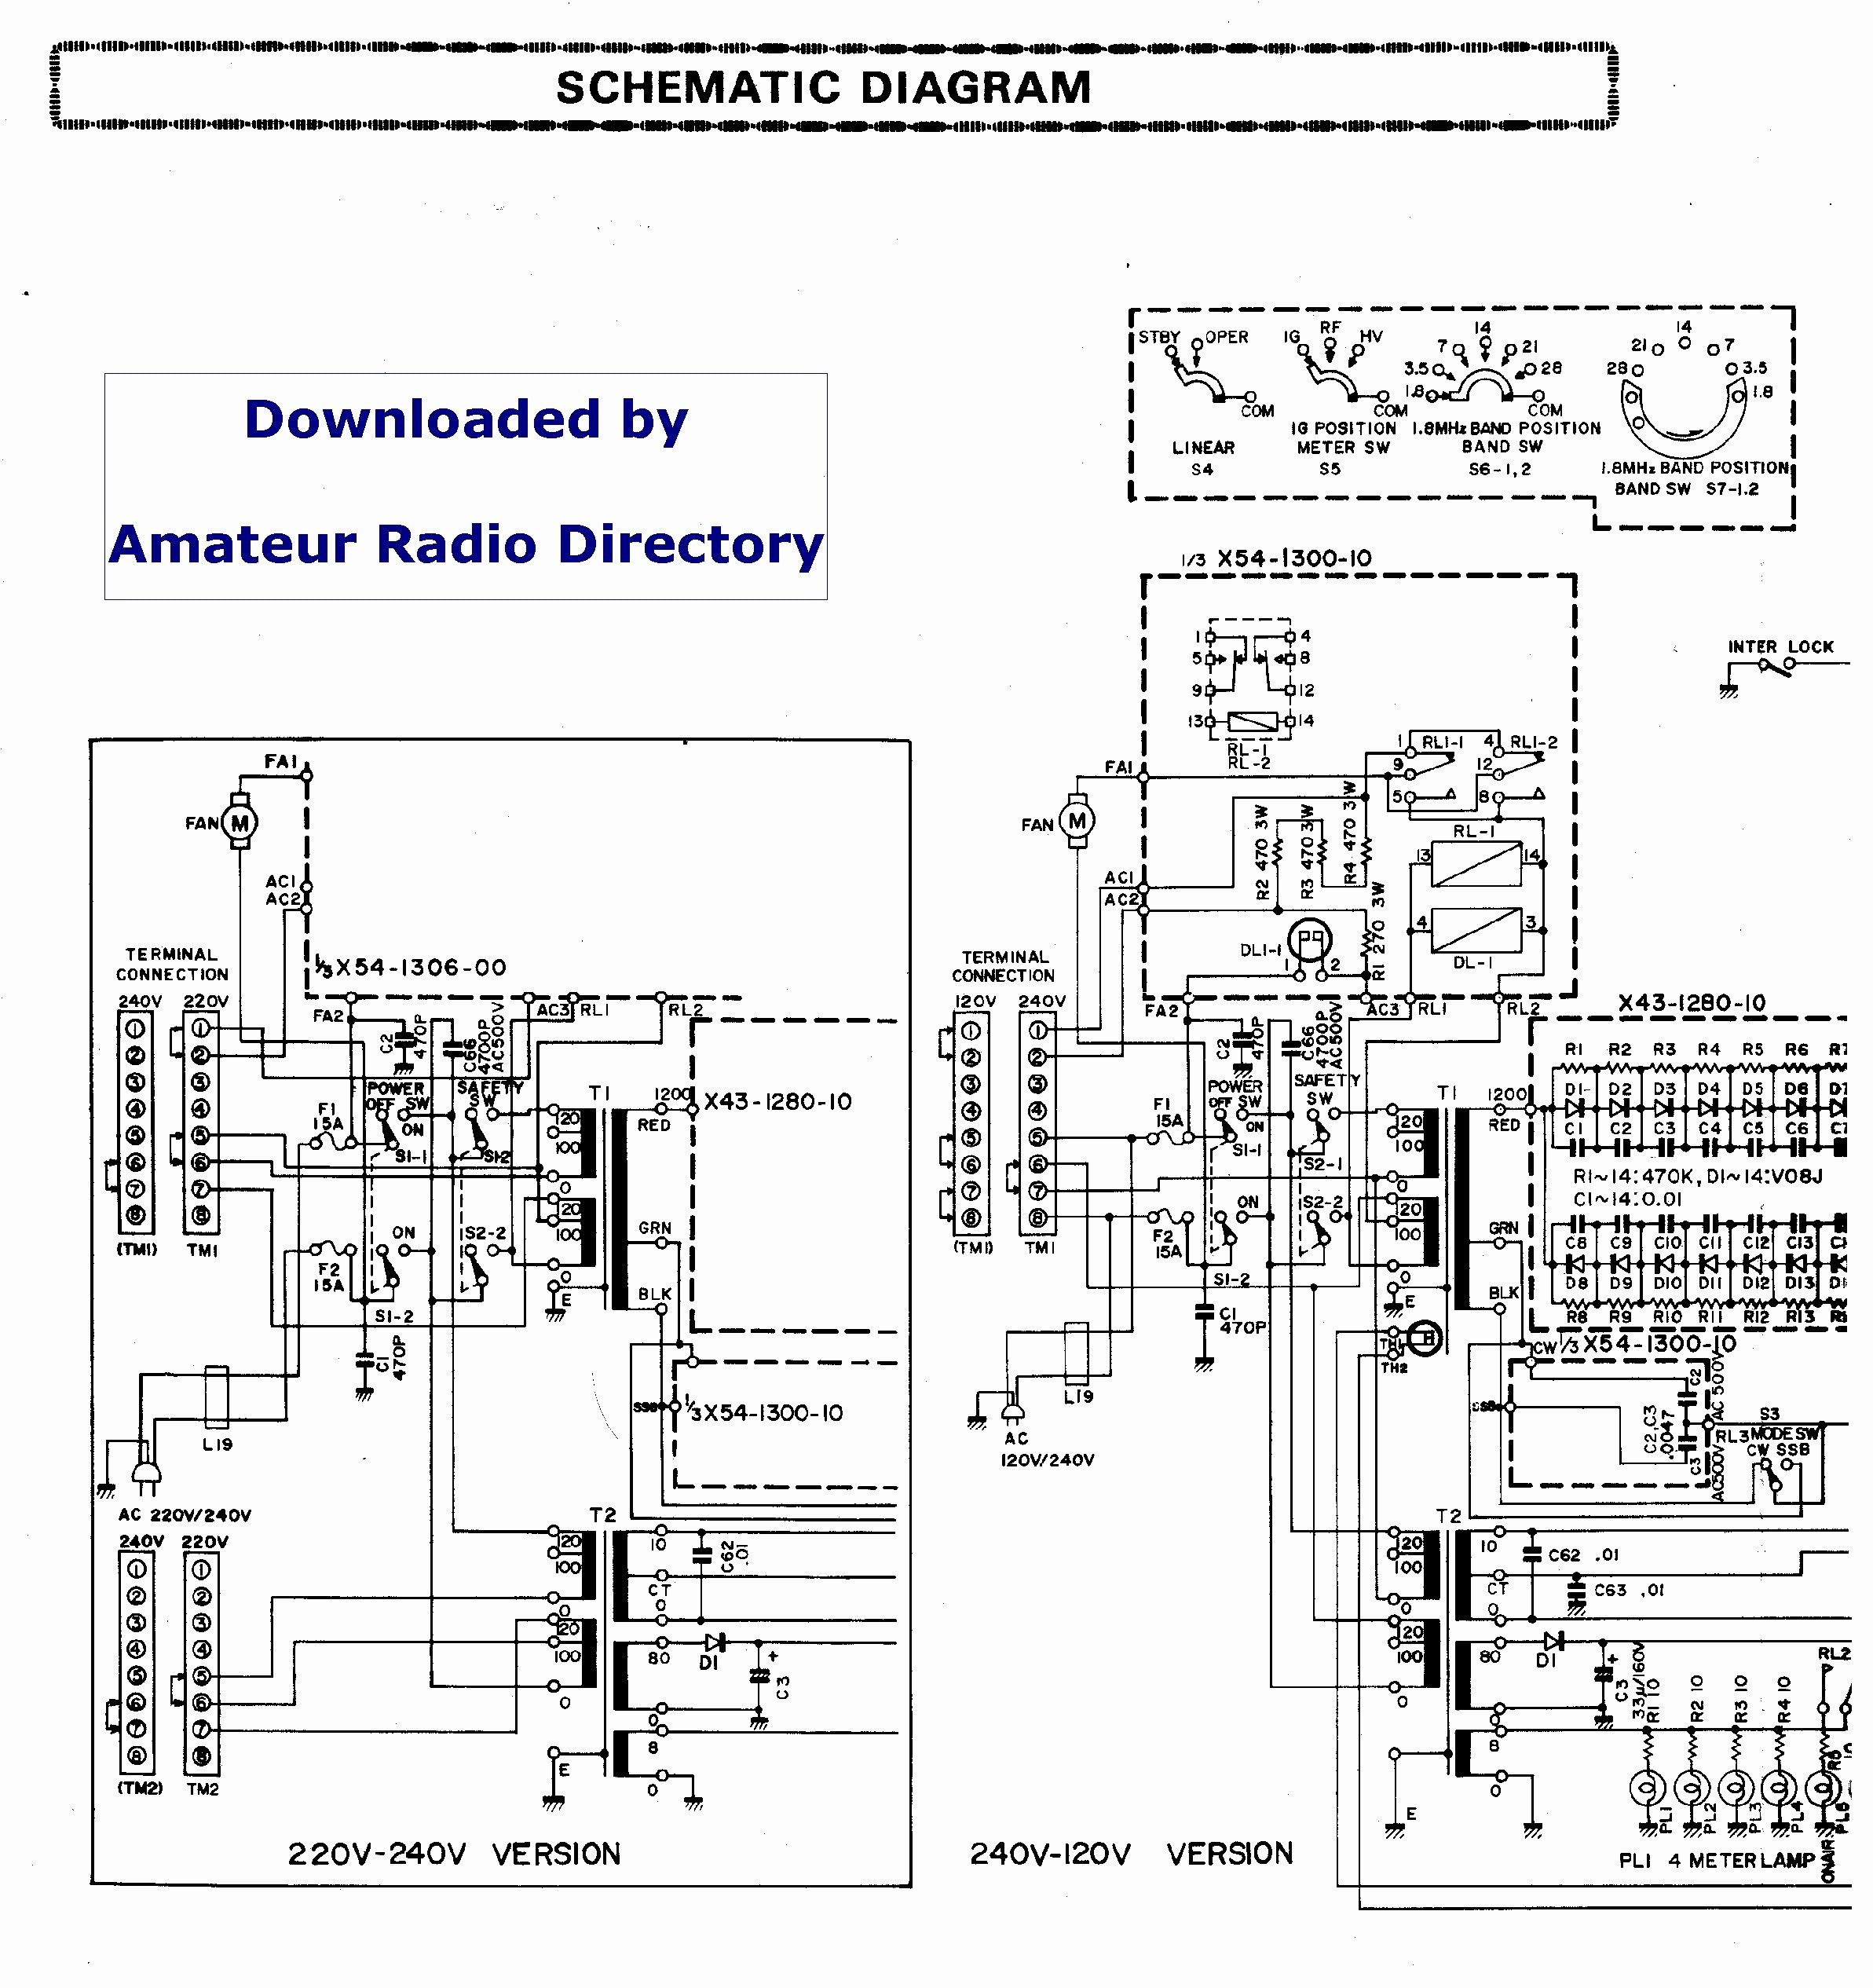 [NRIO_4796]   92D Kenwood Kvt 516 Wiring Harness Diagram | Wiring Library | Kenwood Kvt 512 22 Pin Wiring Diagram |  | Wiring Library